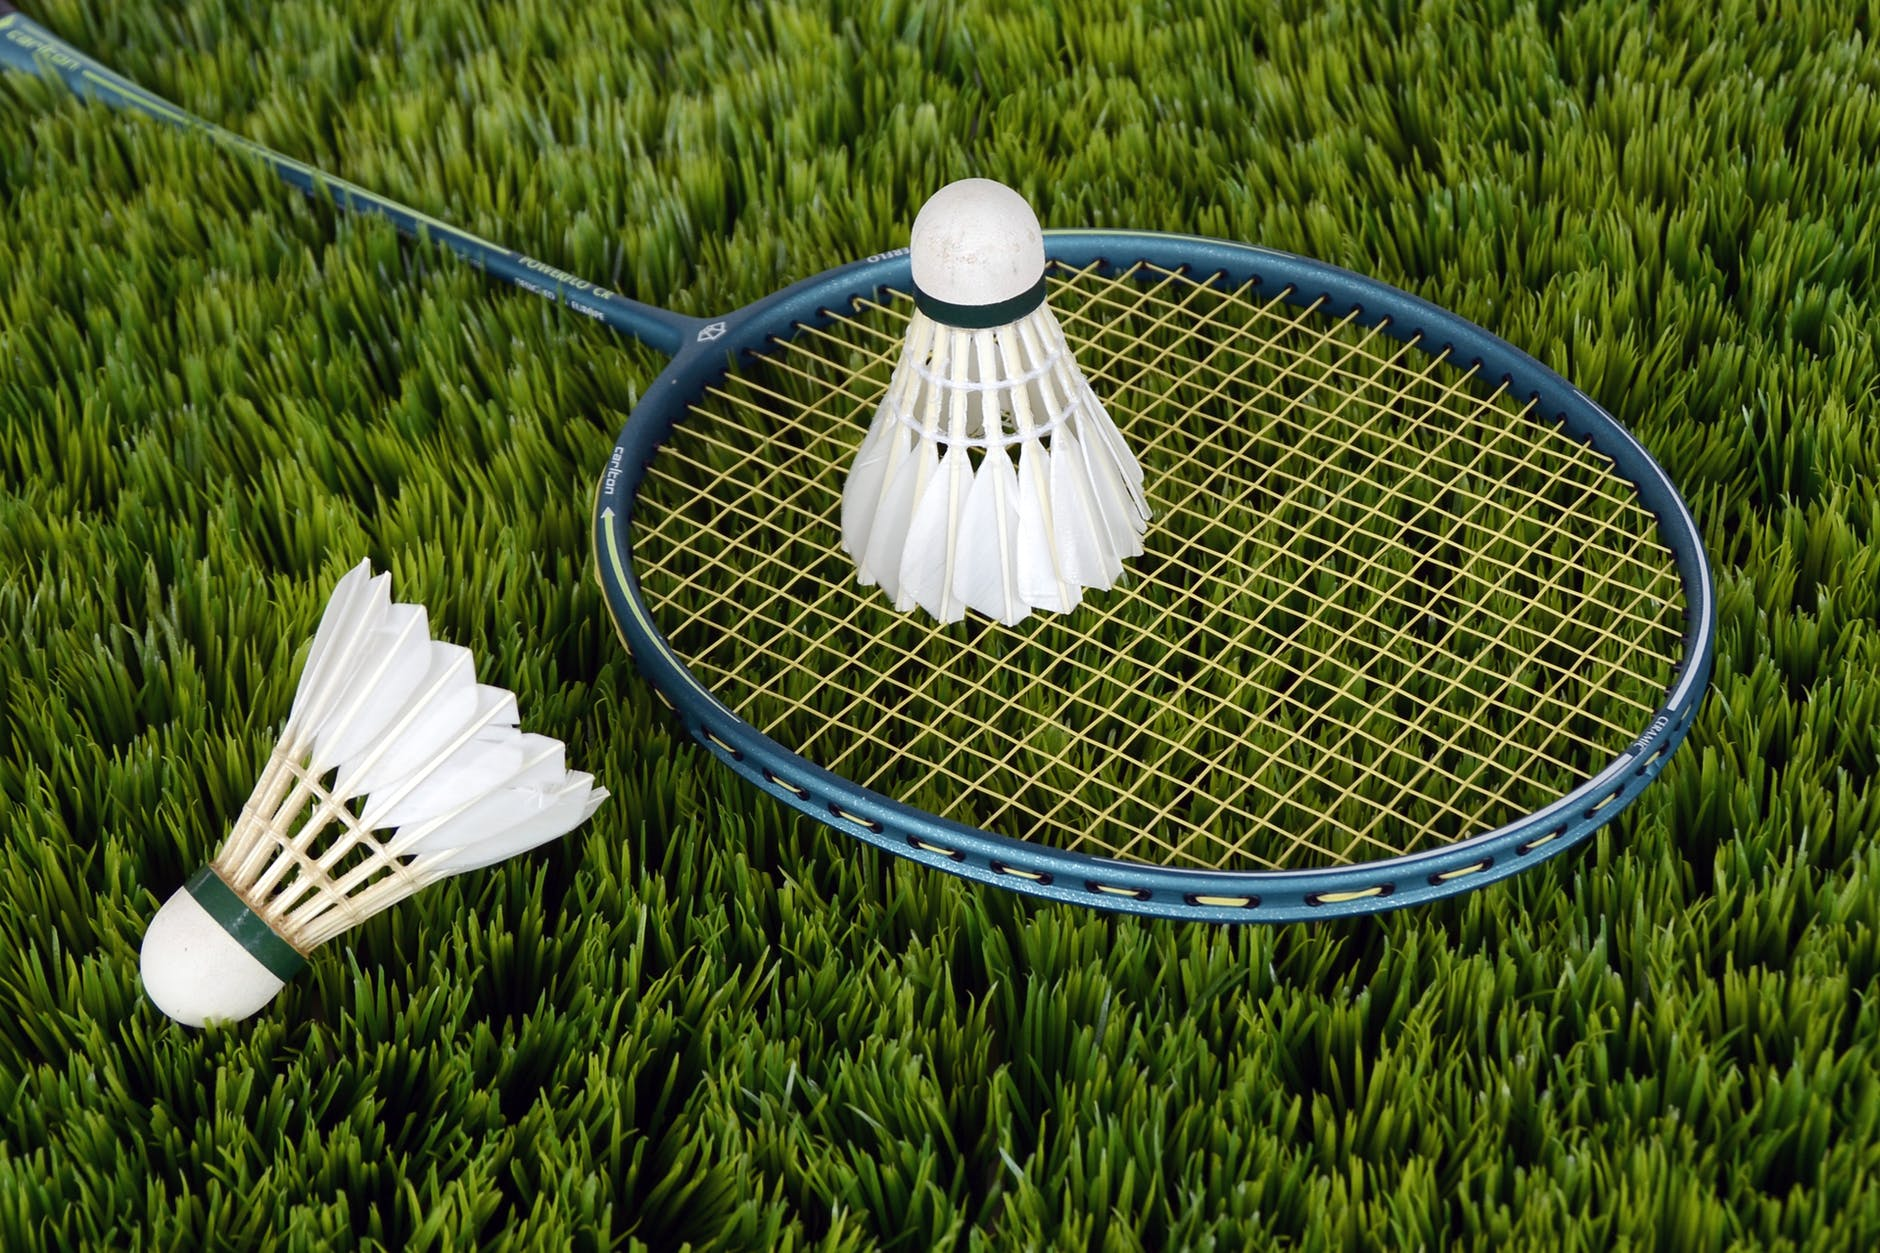 badminton racket and shuttle cocks  lying in the ground